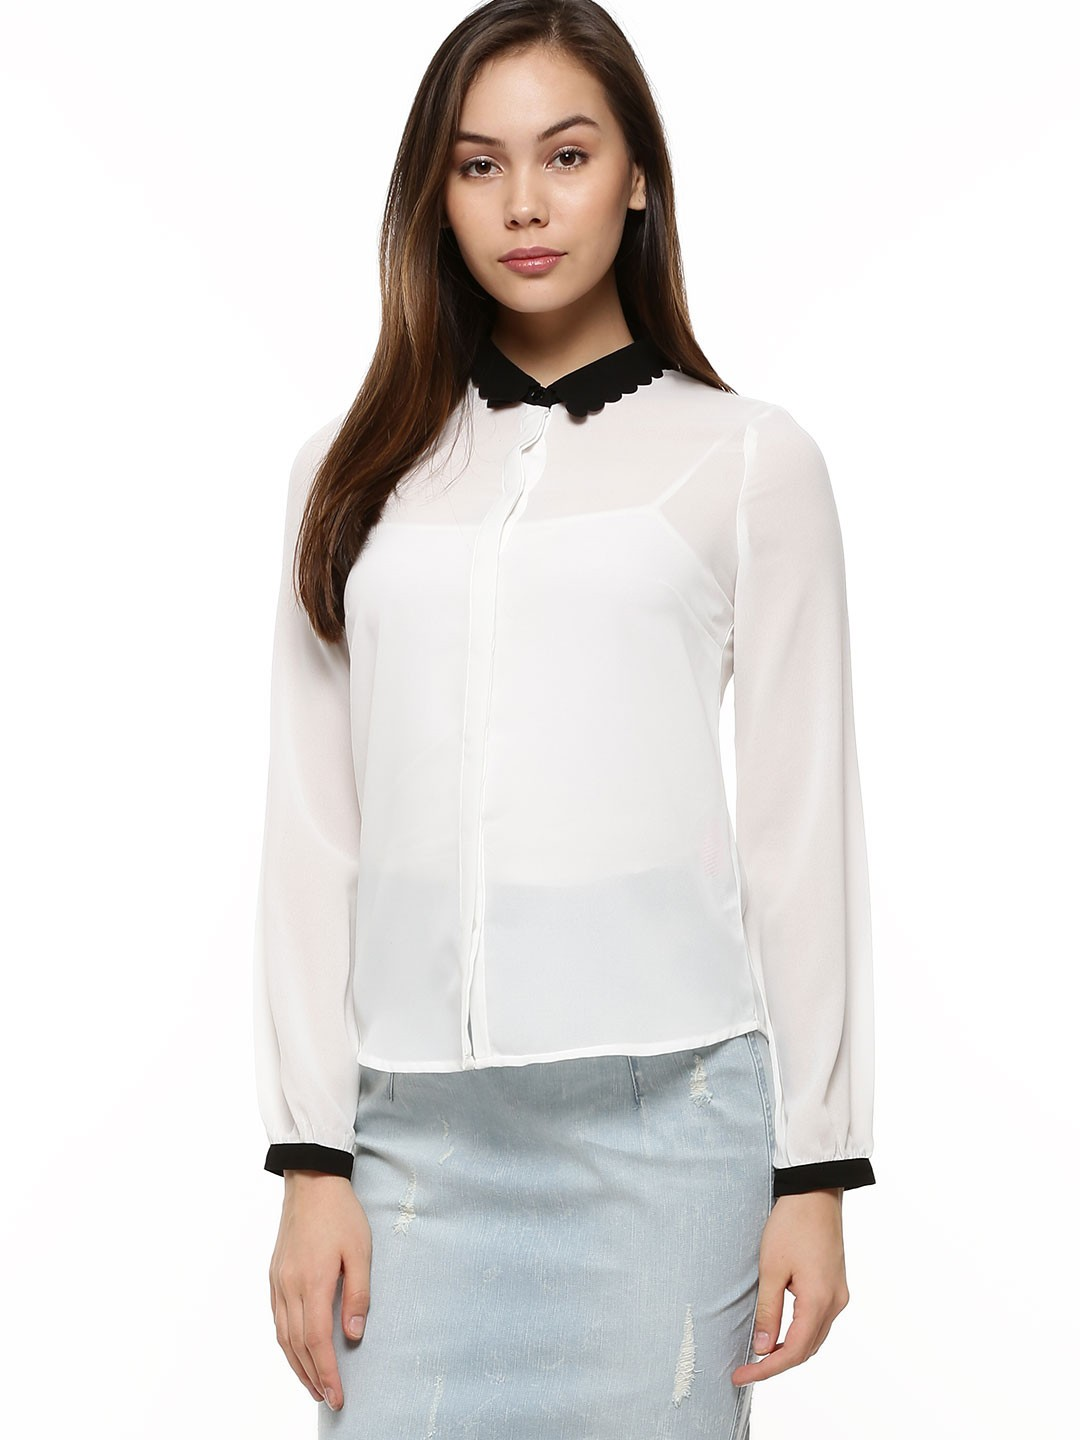 Buy VERO MODA Contrast Collar Shirt For Women - Women's White ...